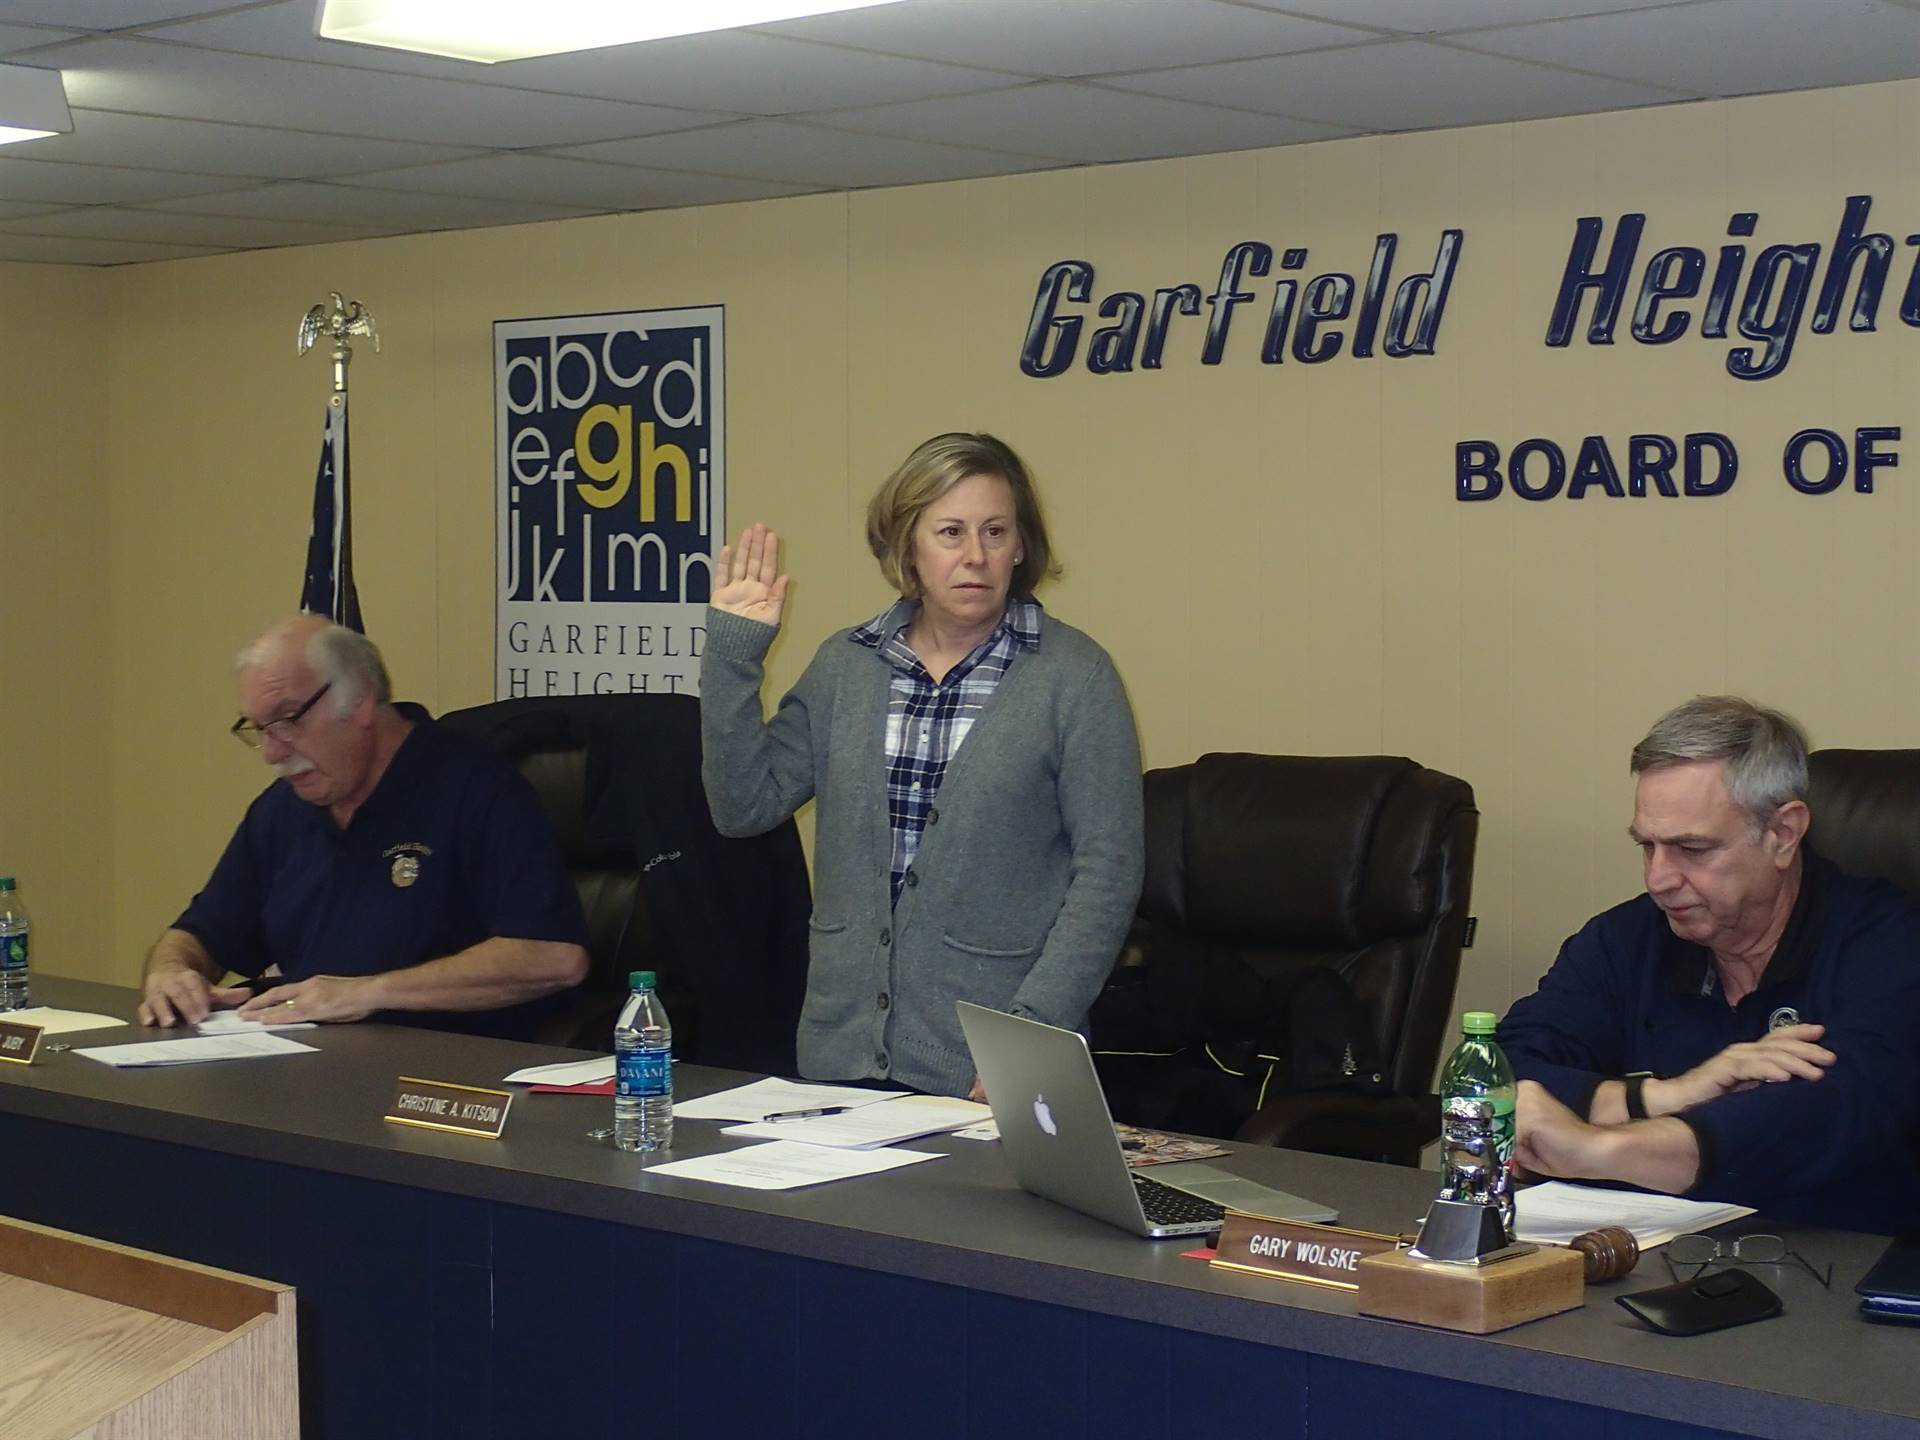 Christine Kitson during the swearing in ceremony for the board of education